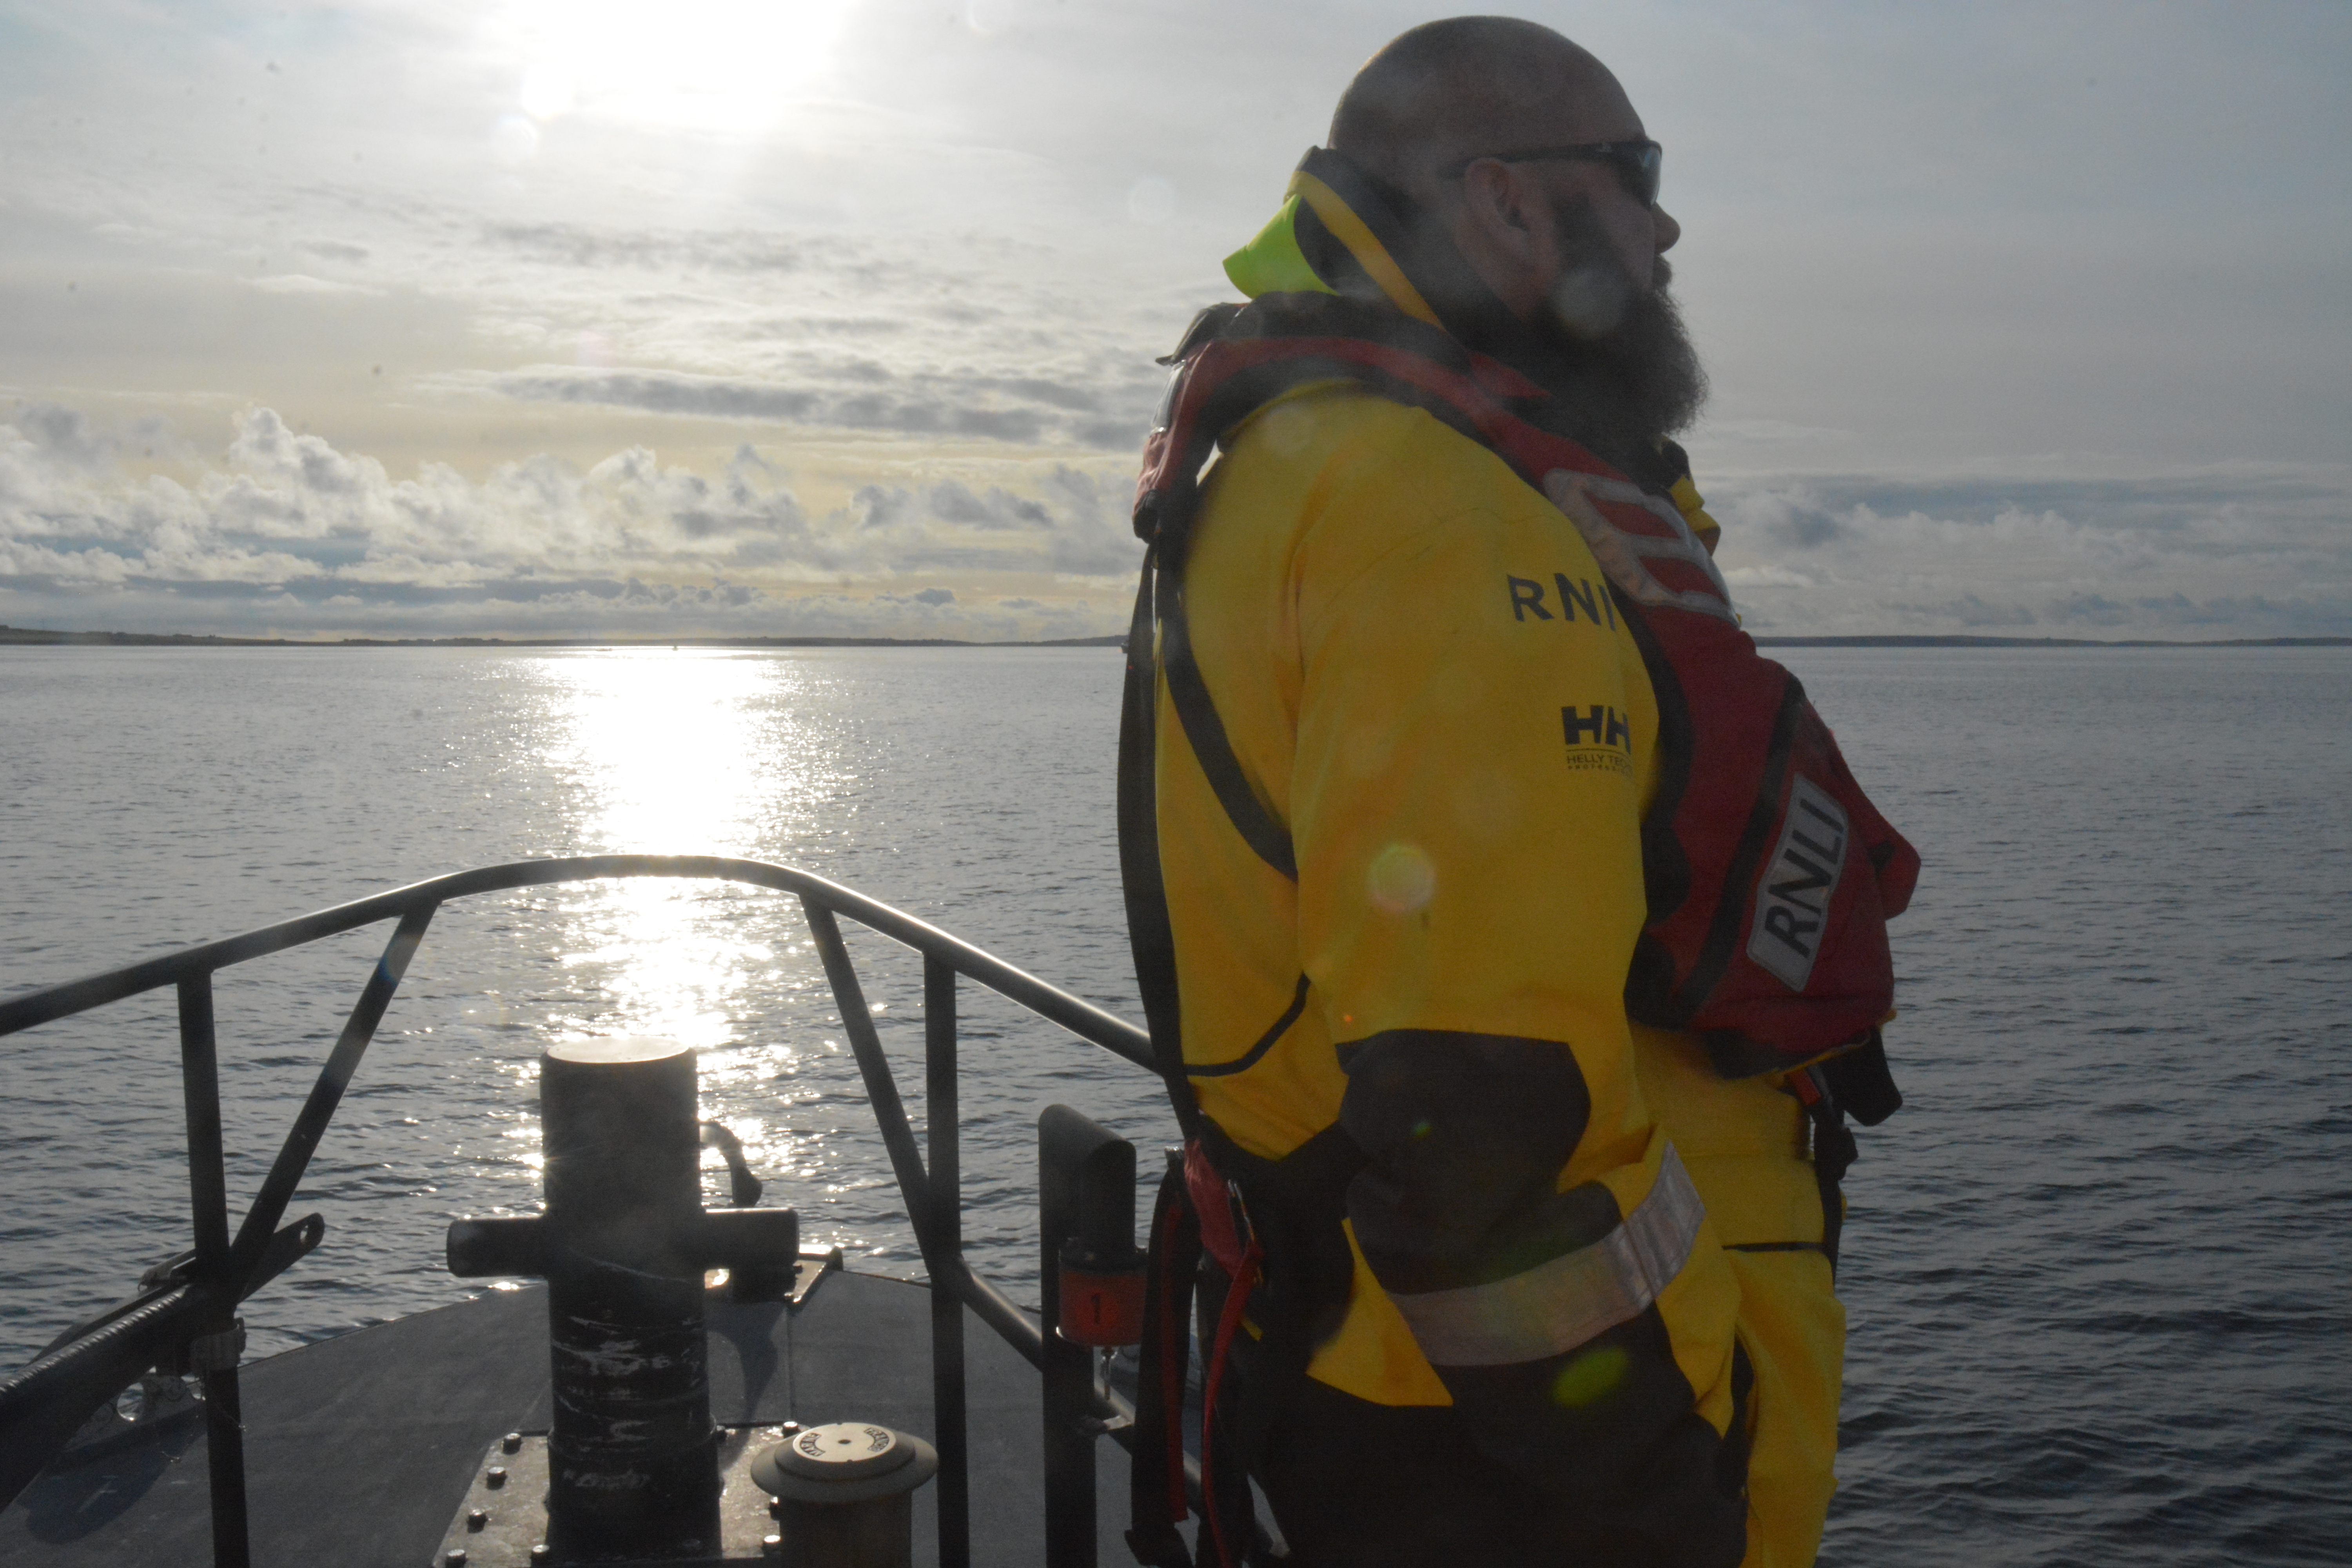 Solitary lifeboat crew member standing quietly at wreck site